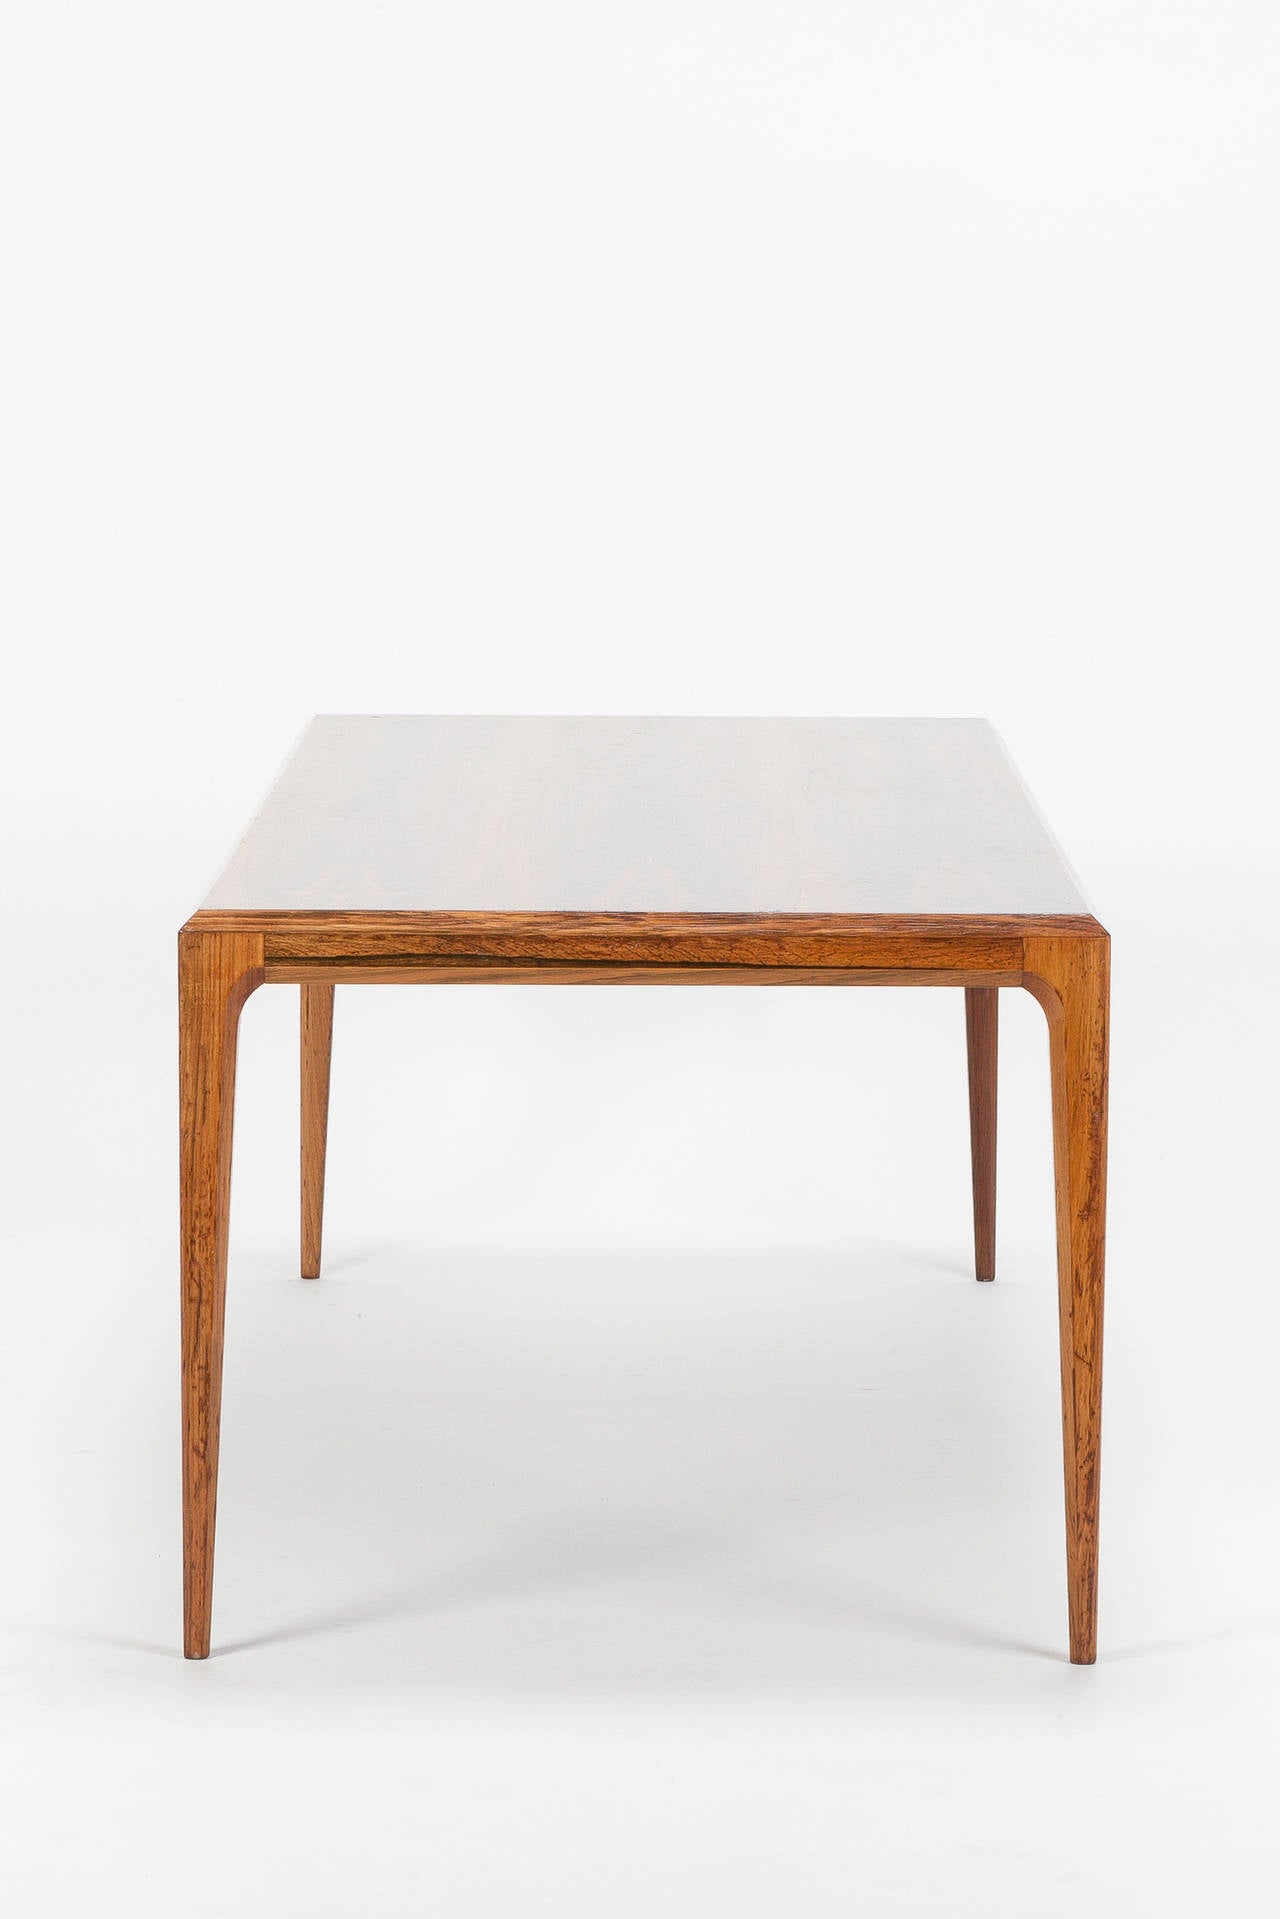 Danish Rosewood Coffee Table by Johannes Andersen Silkeborg, 1960s In Good Condition For Sale In Basel, CH